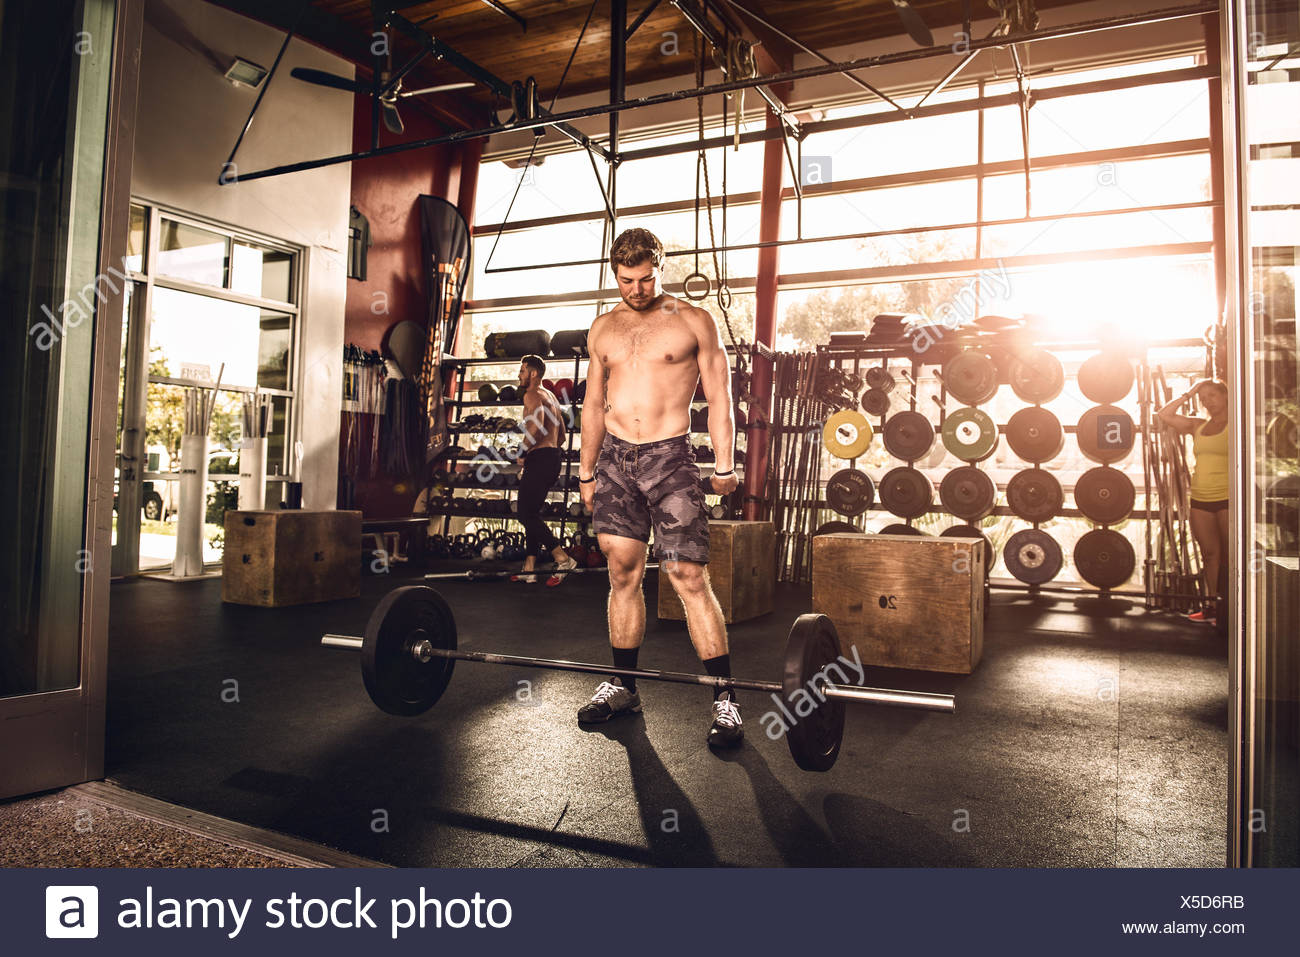 Bodybuilder looking down at barbell in gym - Stock Image